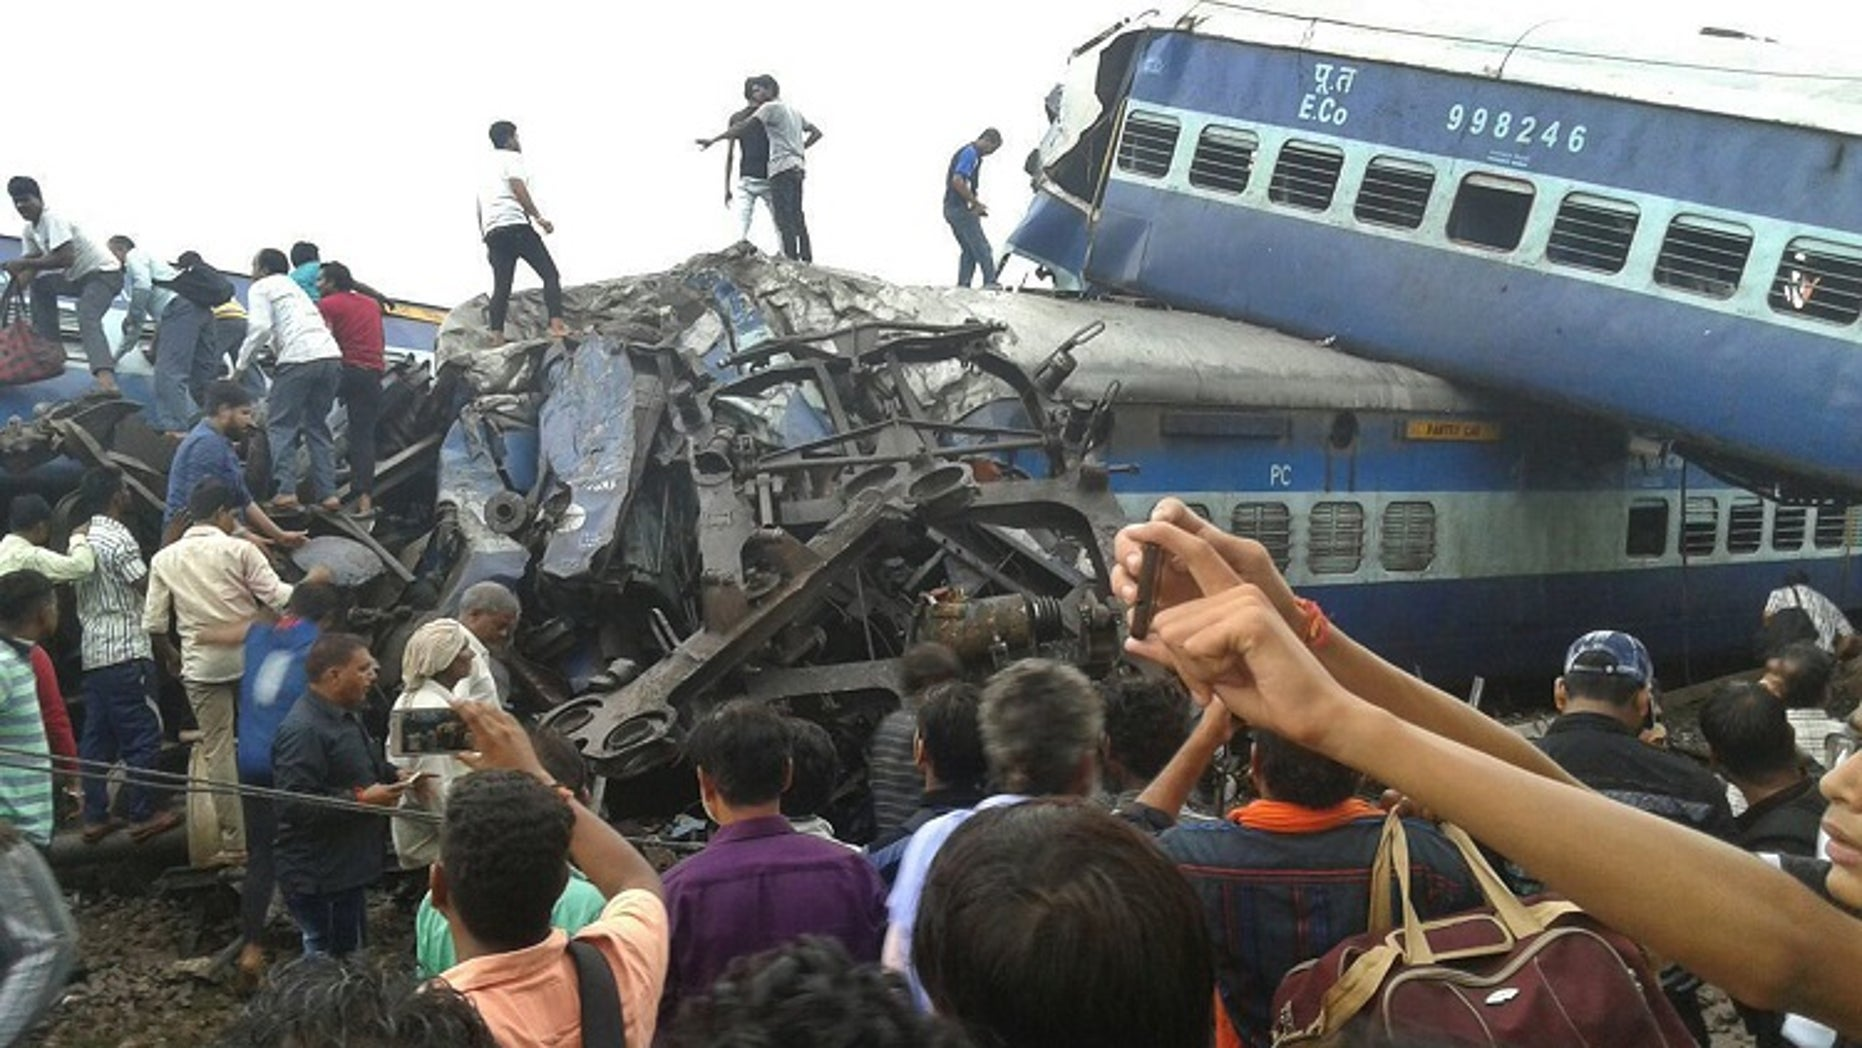 Six coaches of a passenger train derailed in northern India on Saturday, killing more than 20 people and injuring dozens, officials said.